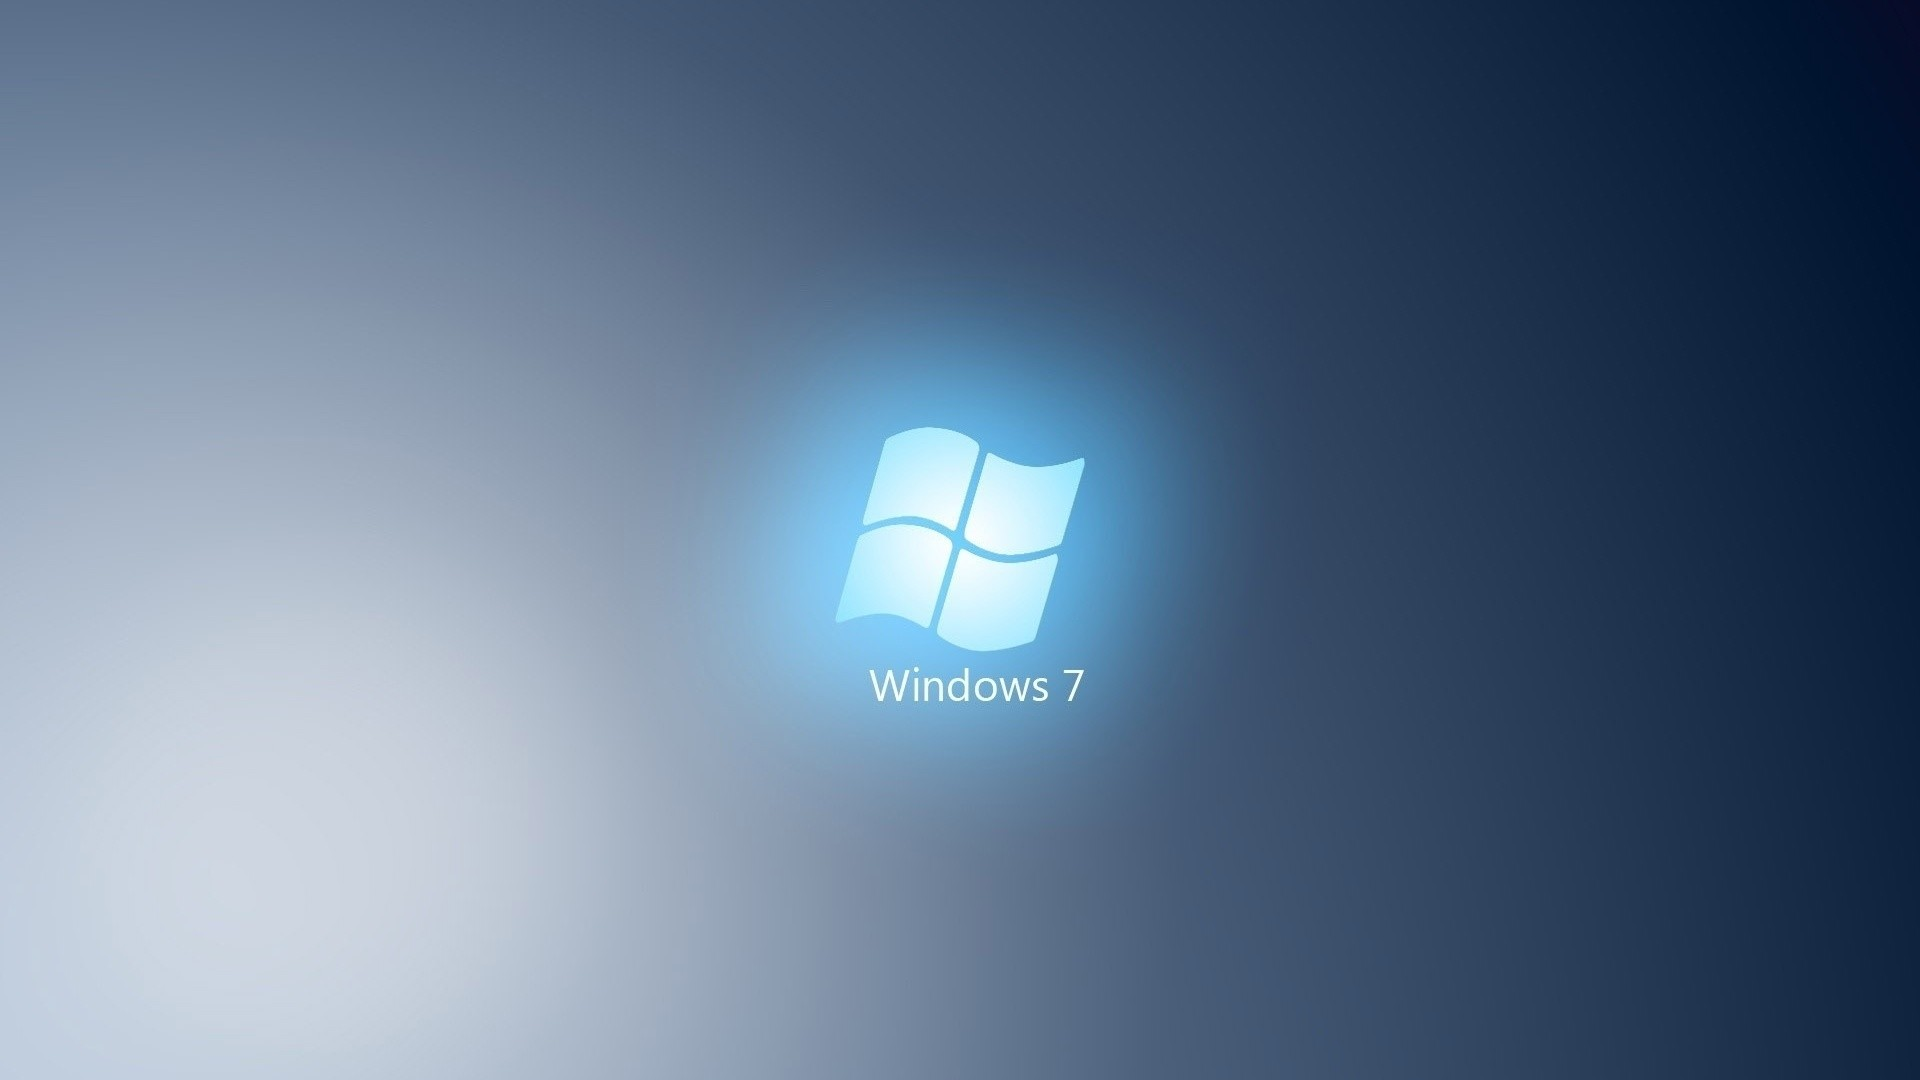 Windows 7 Wallpaper Hd 1920x1080 54 Images